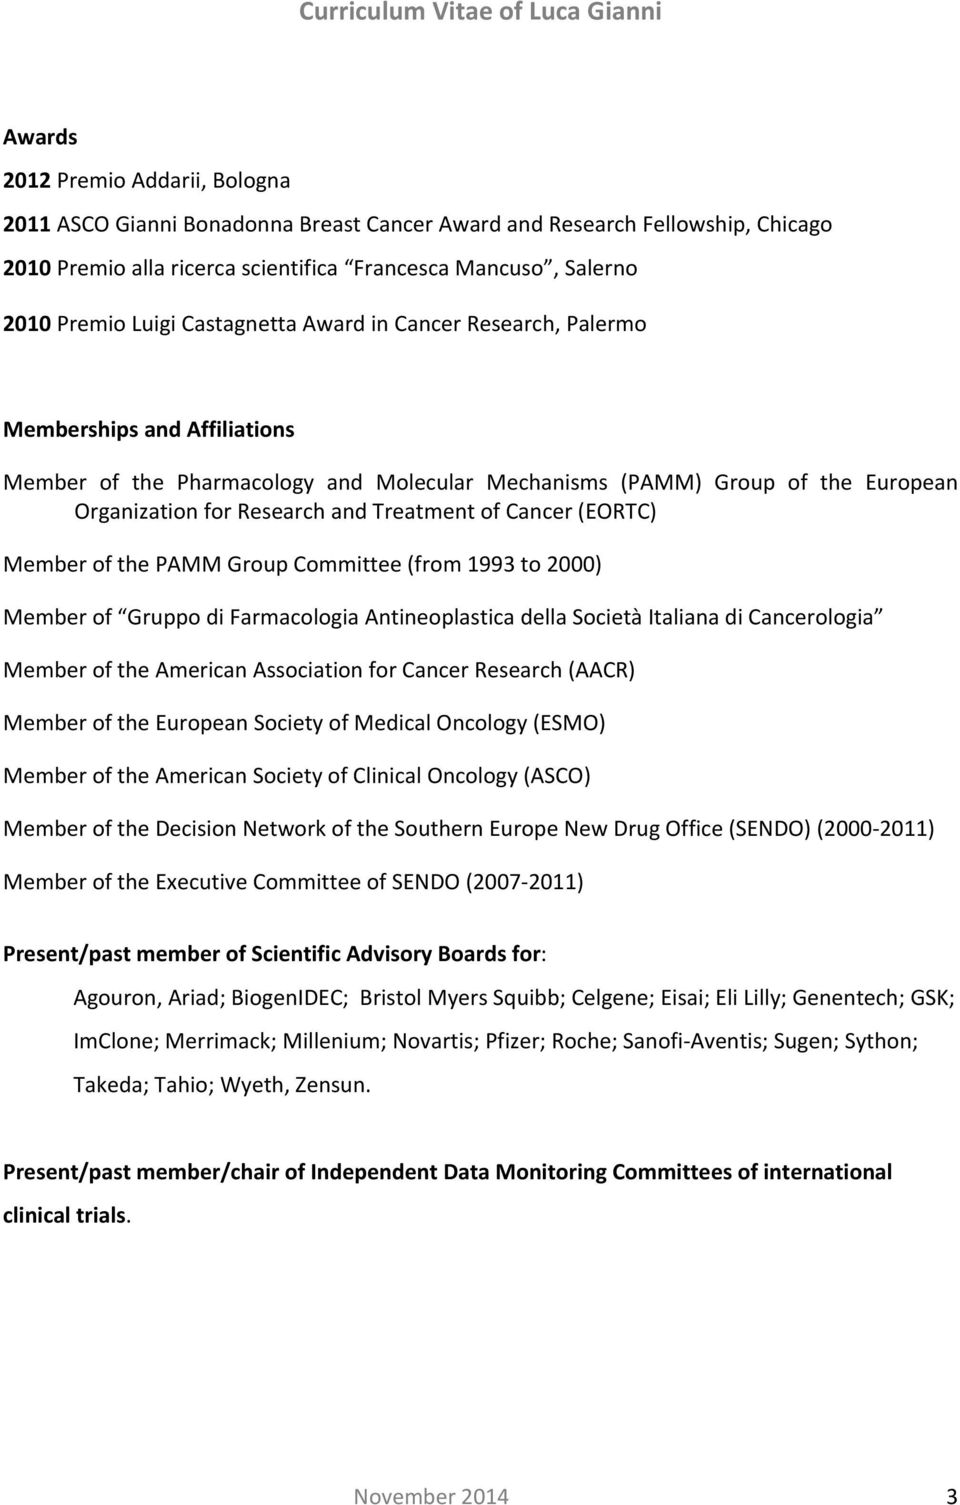 Cancer (EORTC) Member of the PAMM Group Committee (from 1993 to 2000) Member of Gruppo di Farmacologia Antineoplastica della Società Italiana di Cancerologia Member of the American Association for